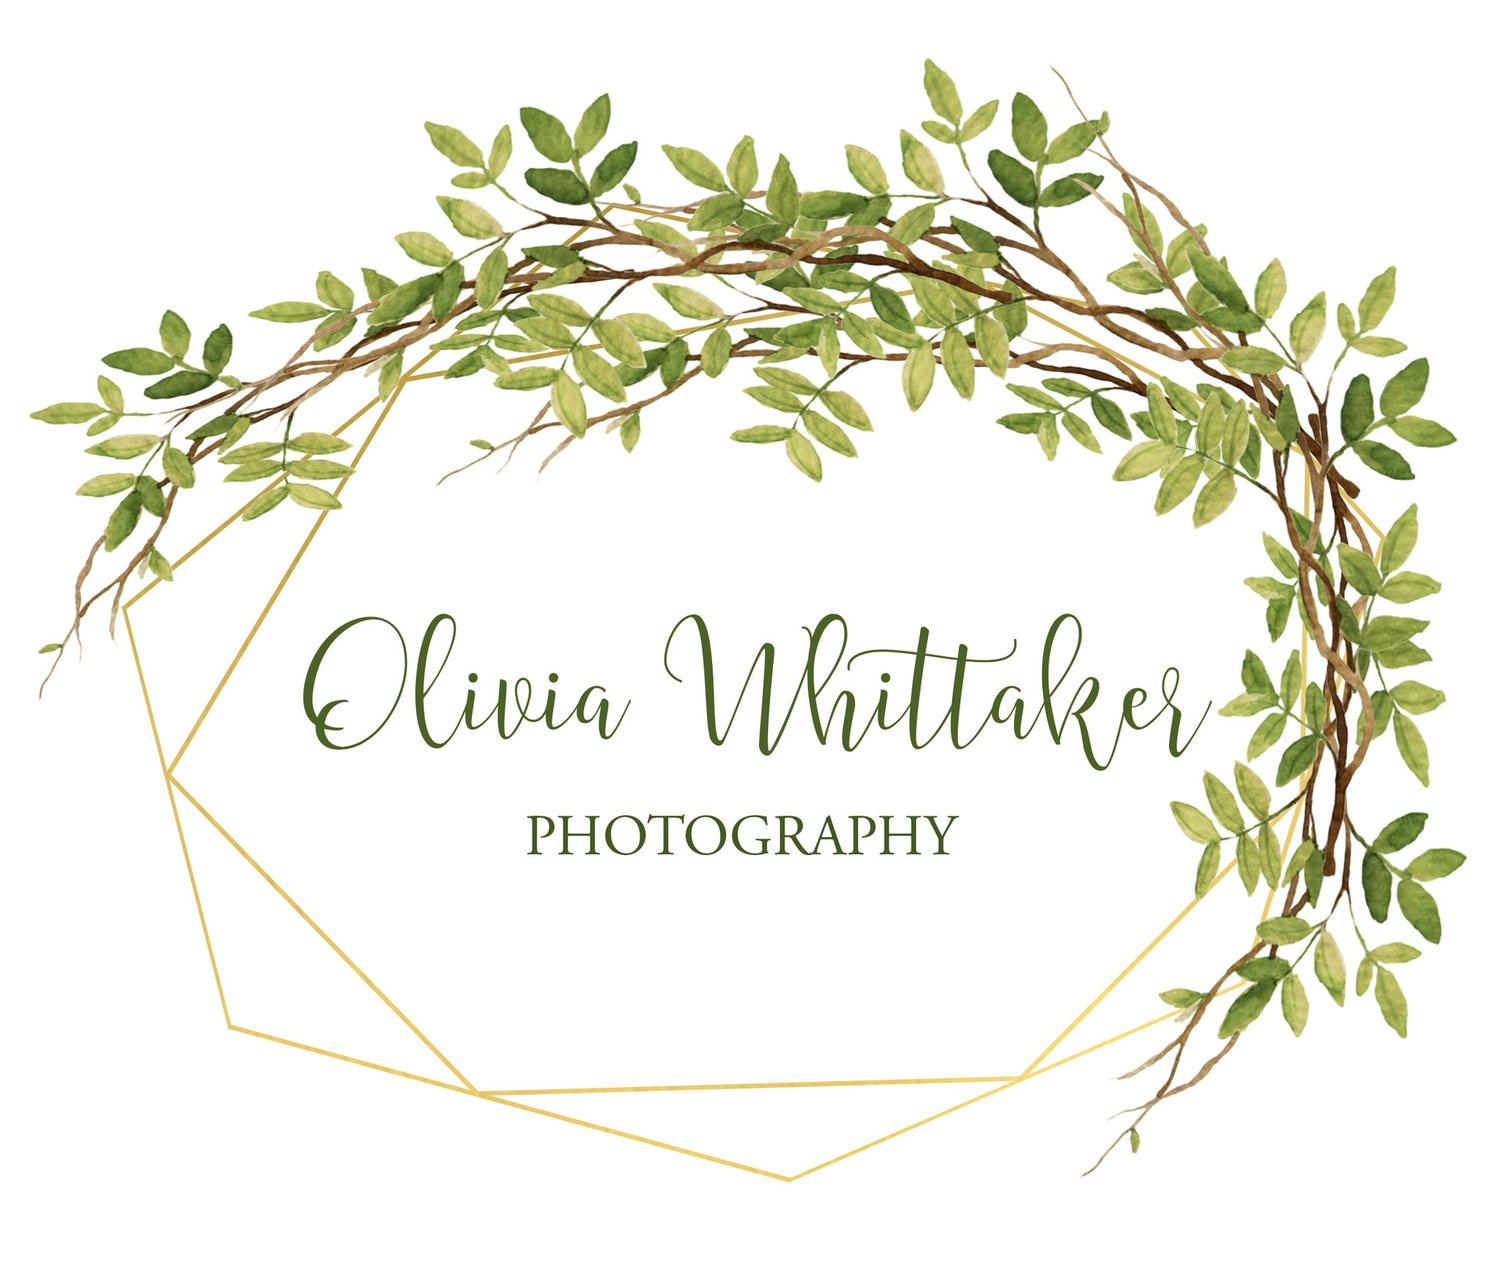 Olivia Whittaker Photography